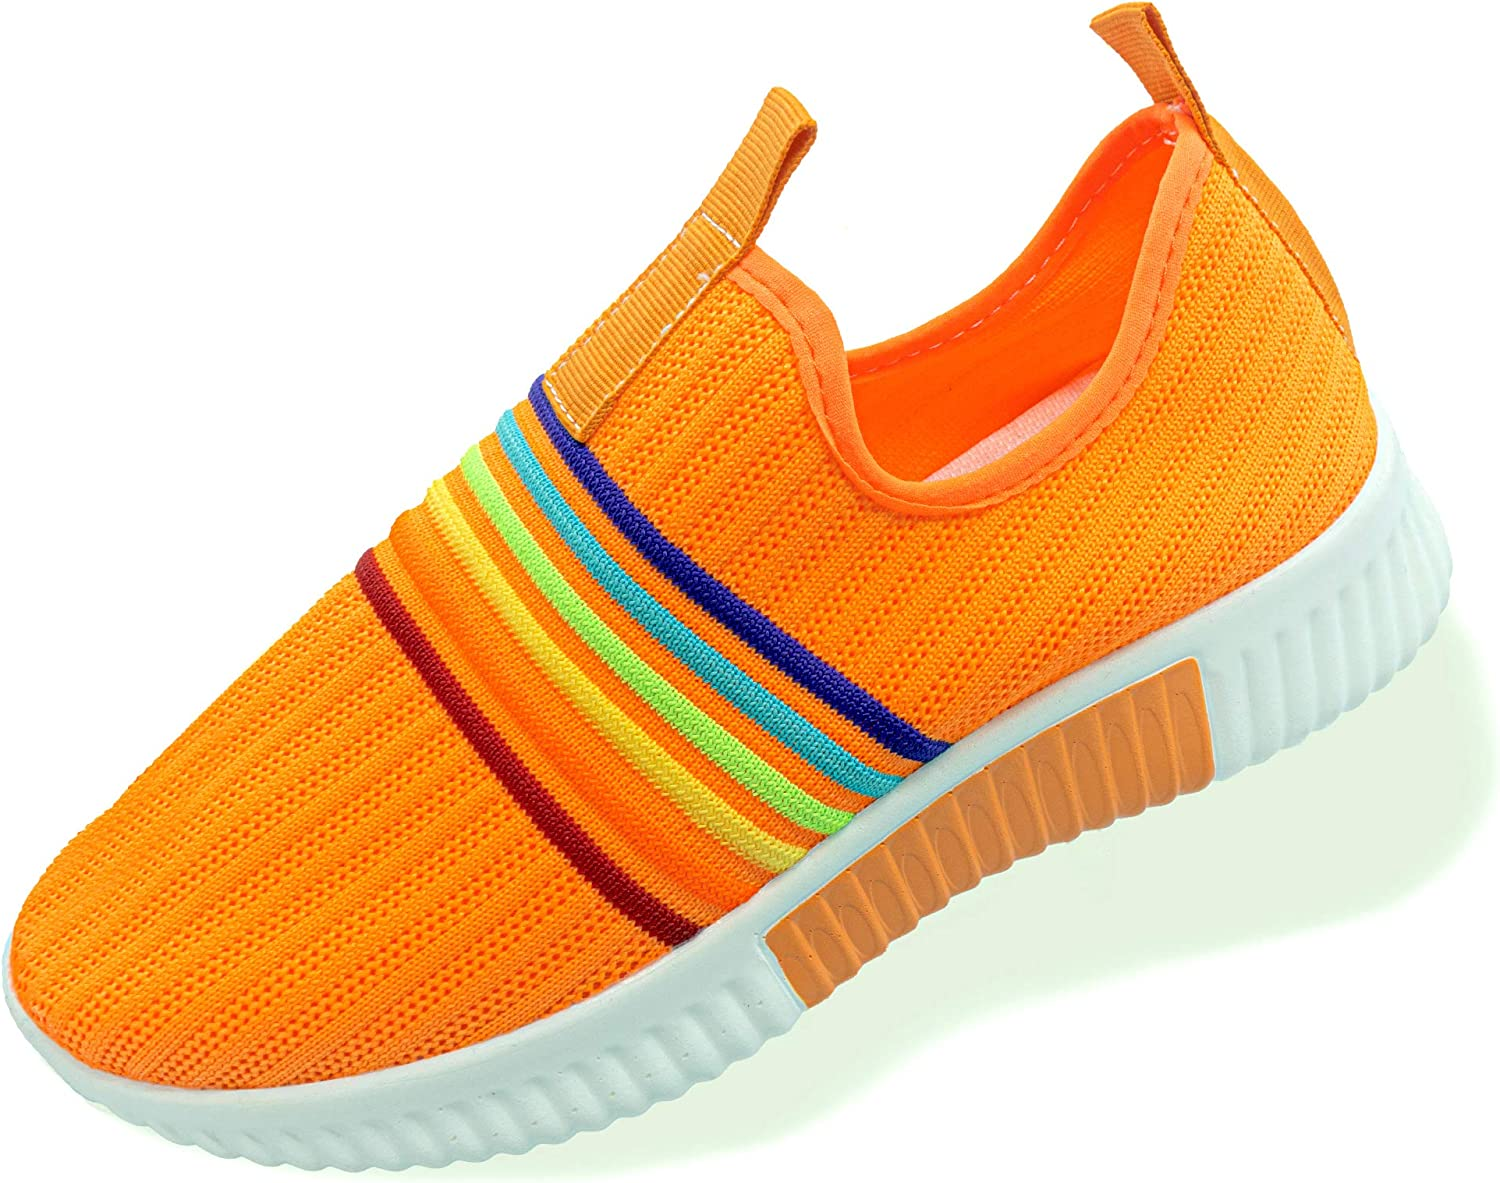 TASHM Women Knitted Mesh Colorful Stripes Shoes - Good for Work,